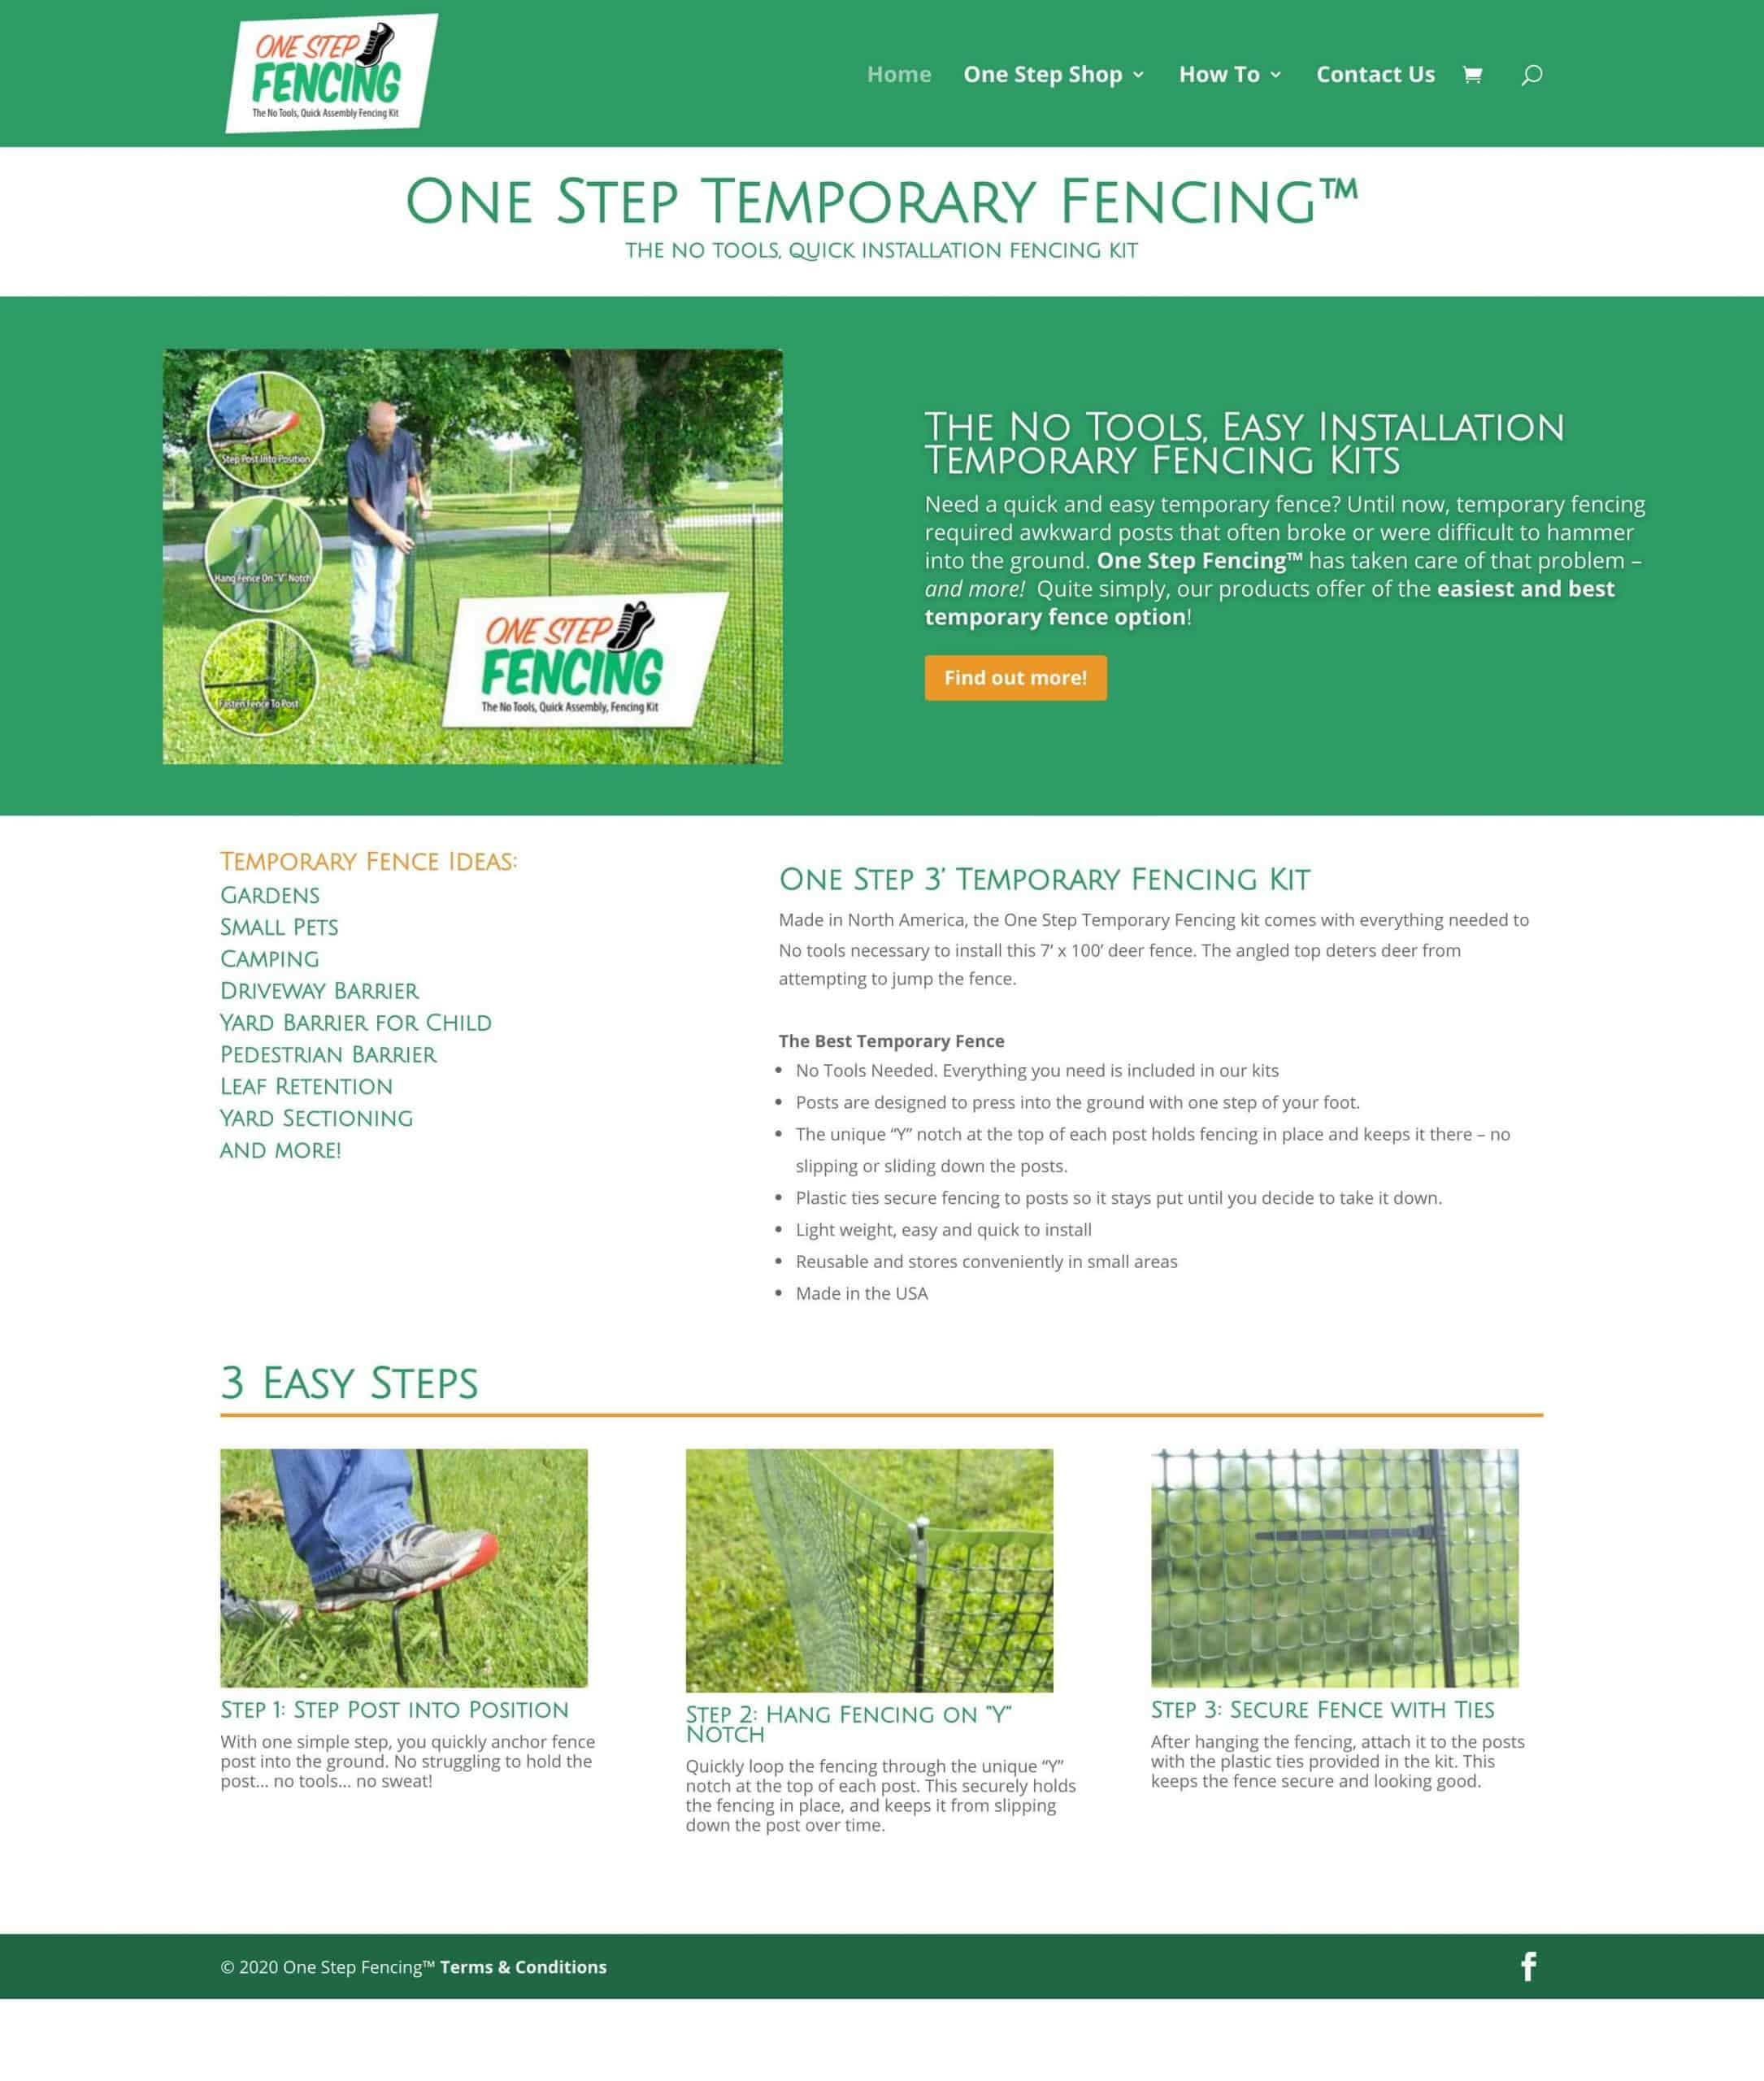 One Step Fencing